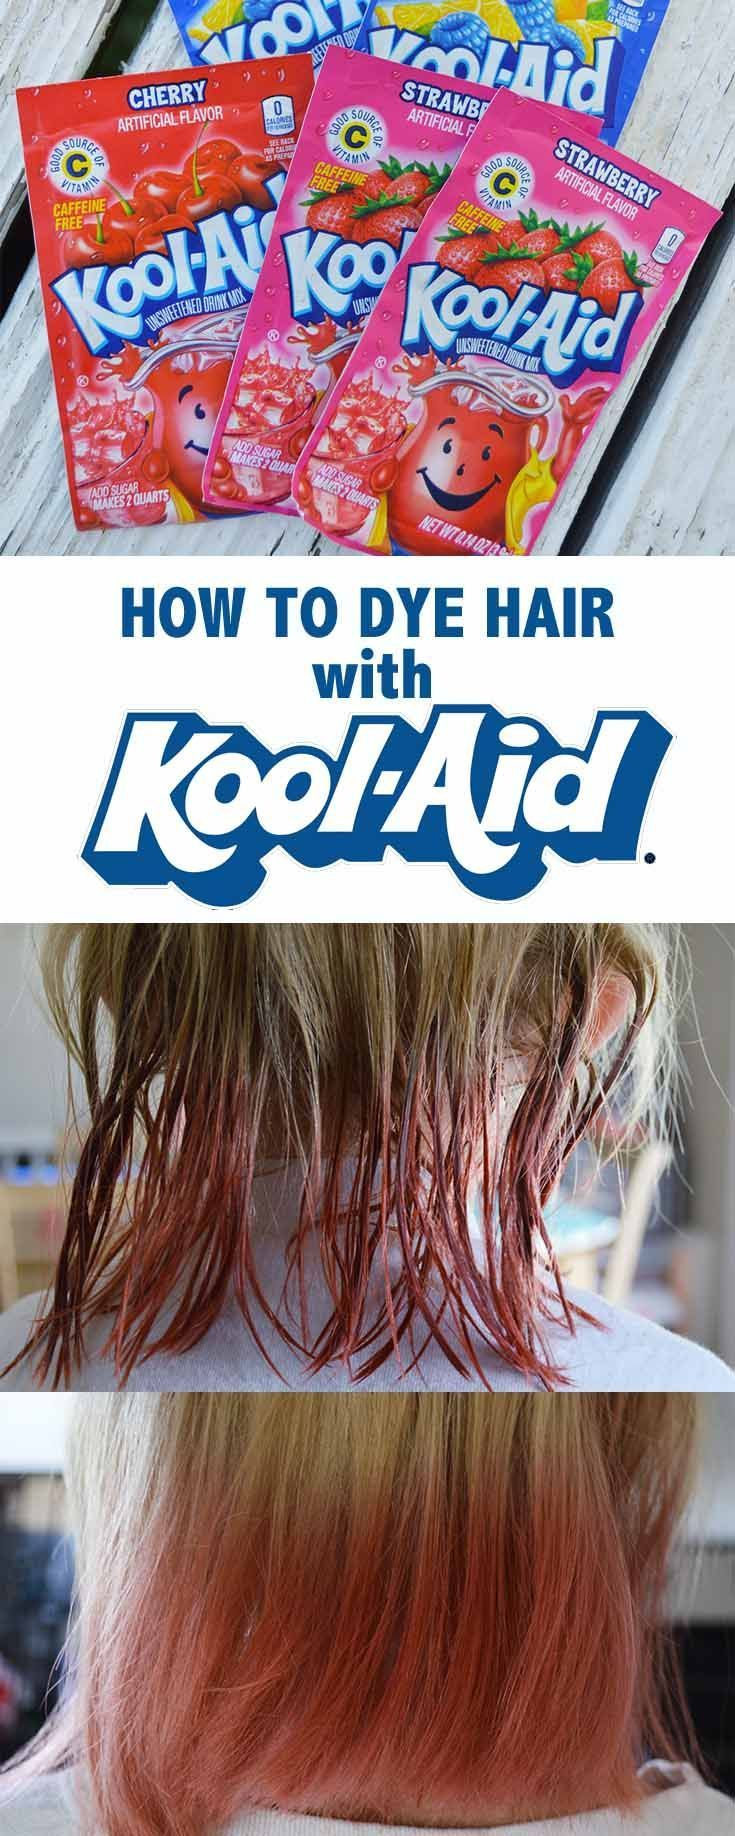 Everything You Need To Know To Dye Your Hair With Kool Aid Kool Aid Hair Dye Kids Hair Color Kool Aid Hair